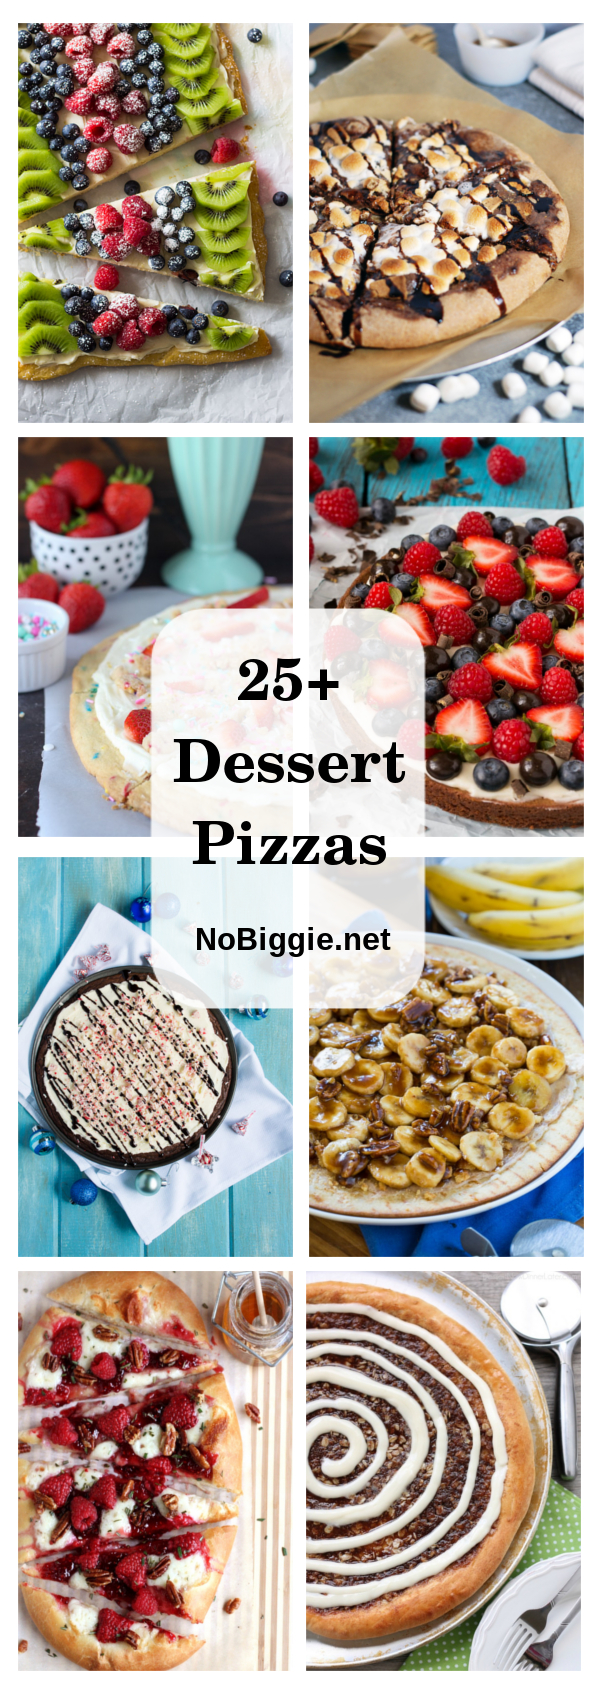 Dessert Pizzas - A great fun way to serve desserts in pizza form because who doesn\'t love pizza! #Pizzadesserts #desserts #creativedesserts #fundesserts #dessertpizza